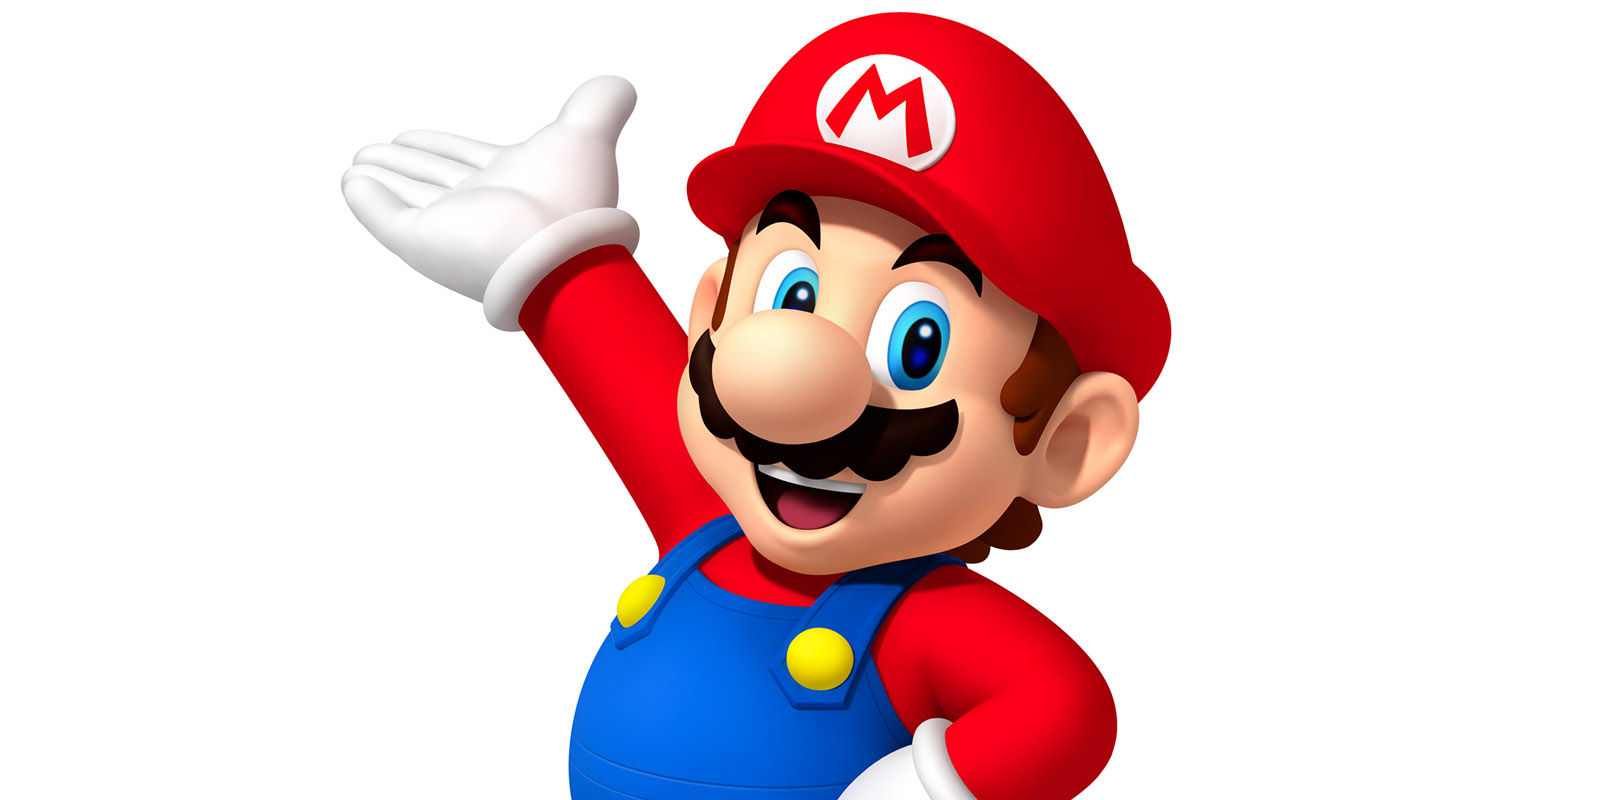 Happy-Mario-Nintendo-News